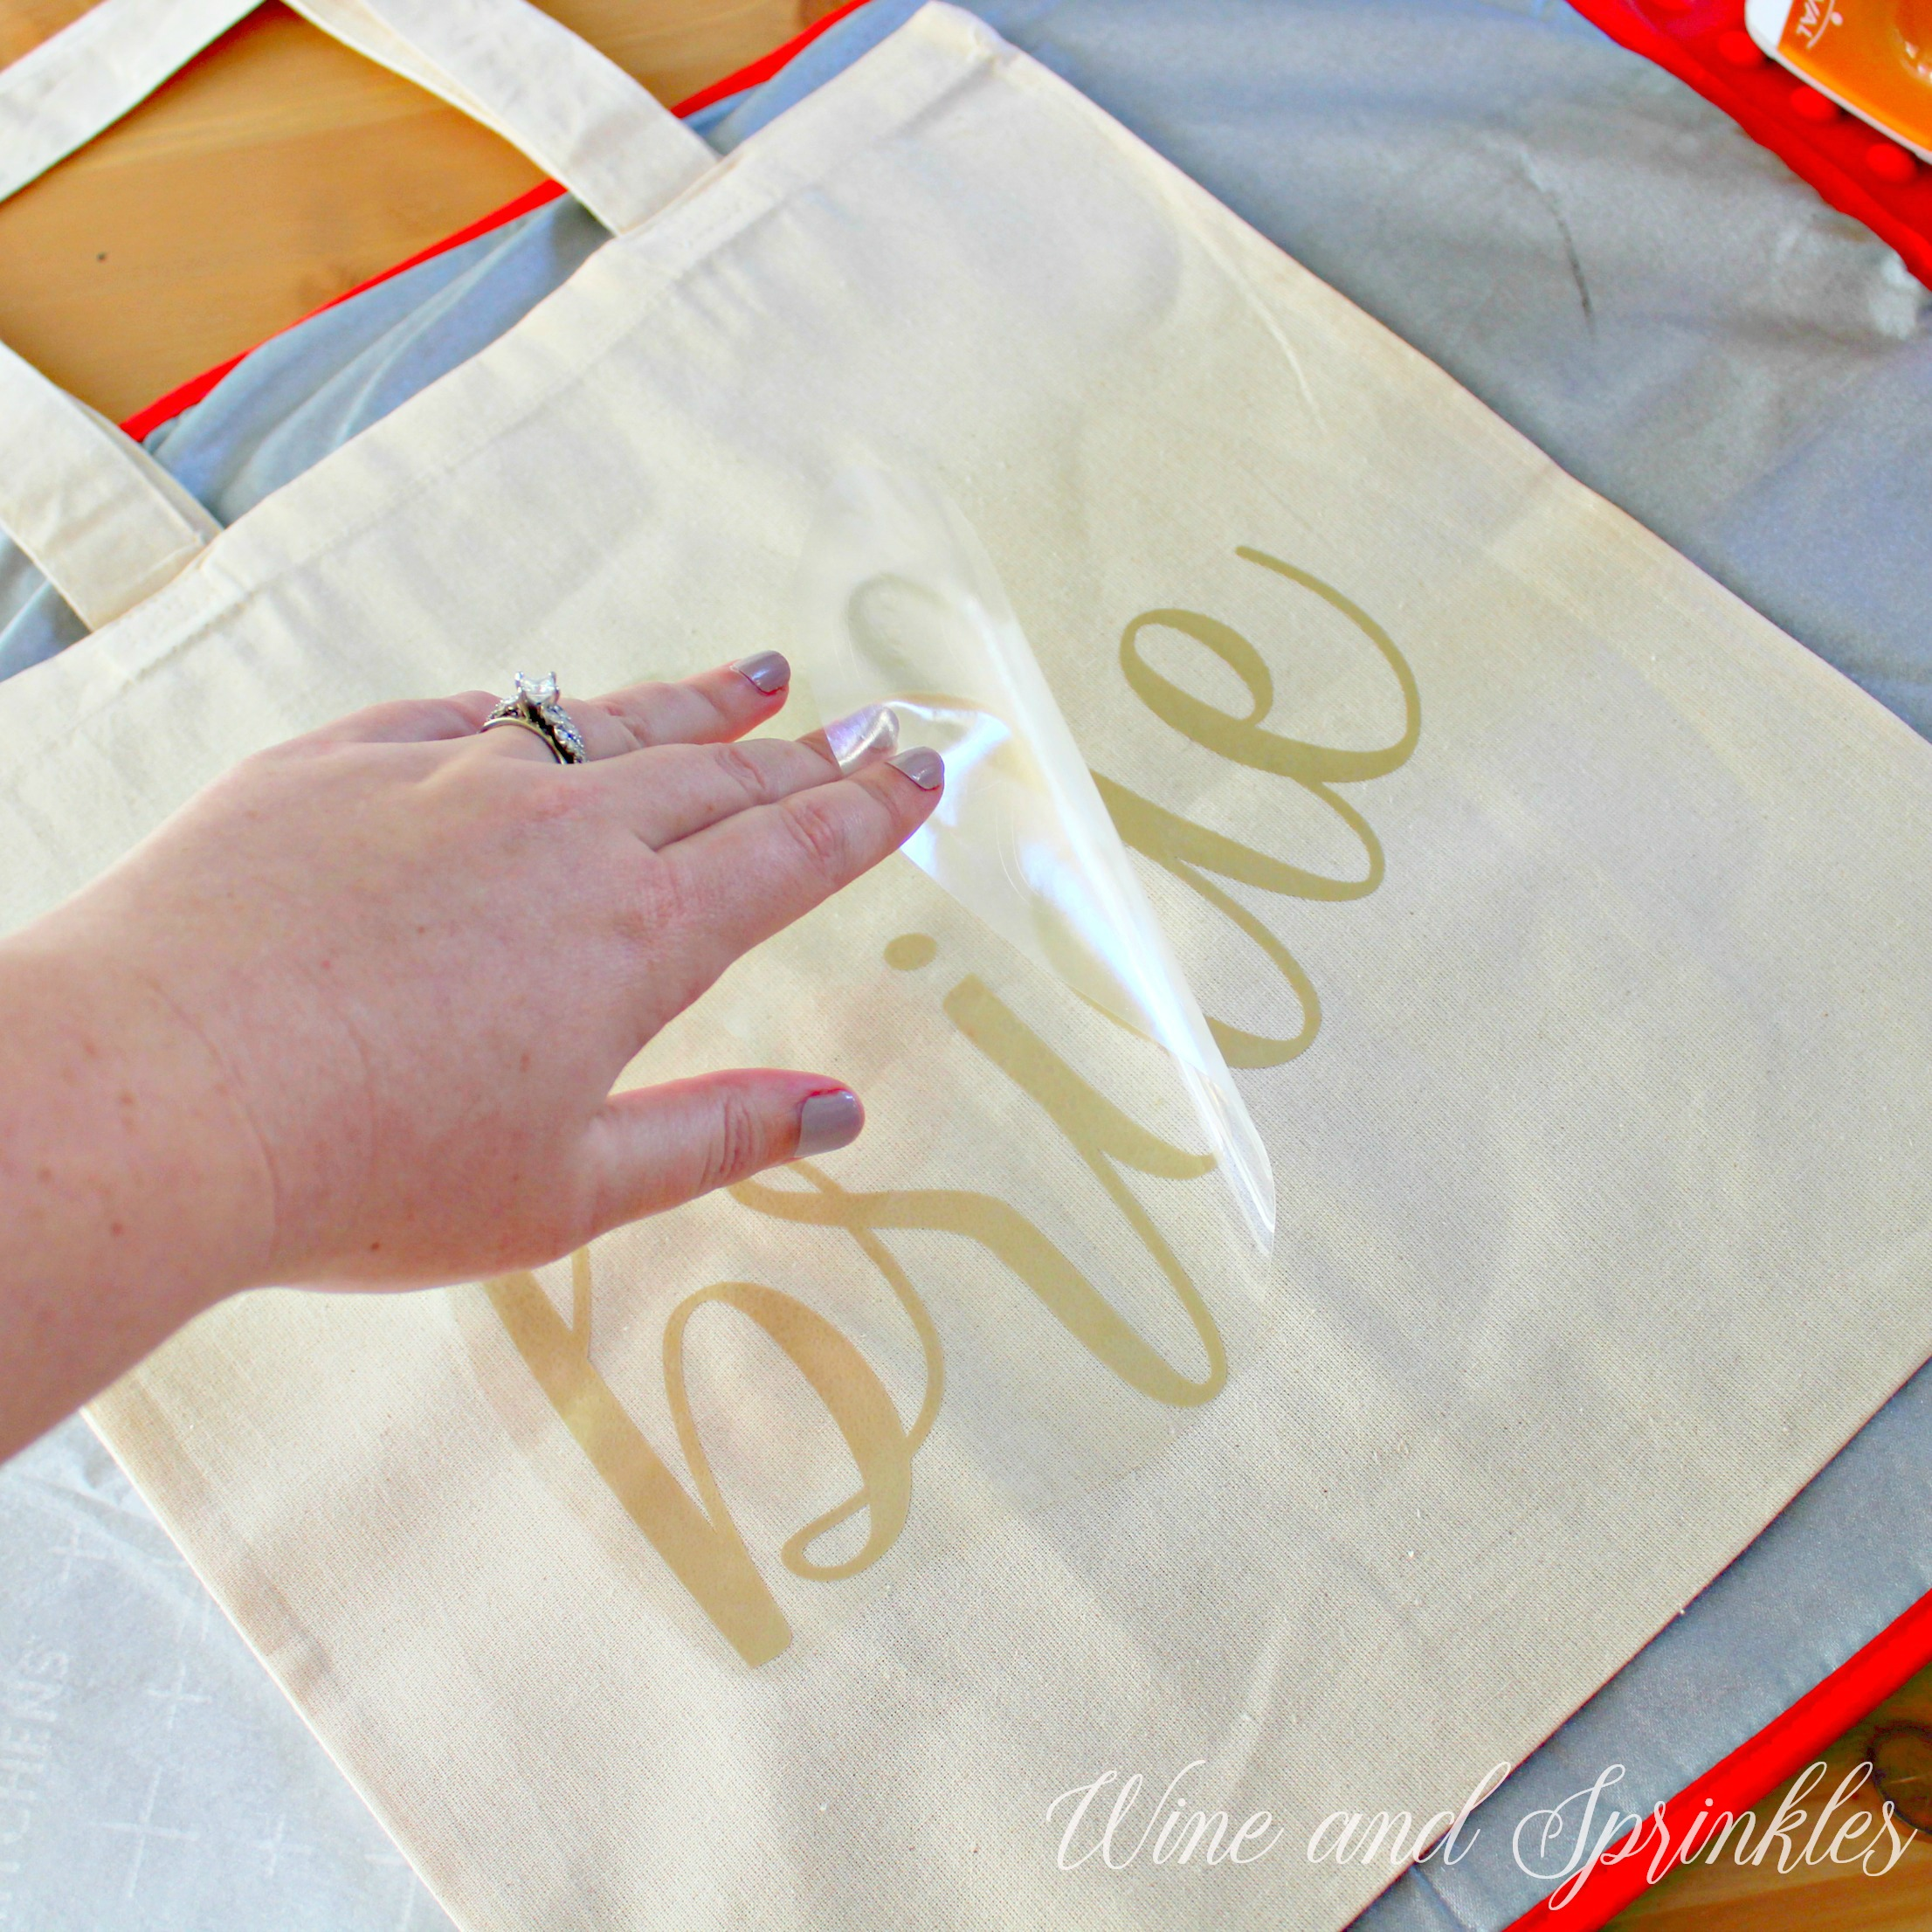 Bridal Party Getting Ready DIY Iron On Tote Bag #diywedding #htvvinyl #svgcutfiles